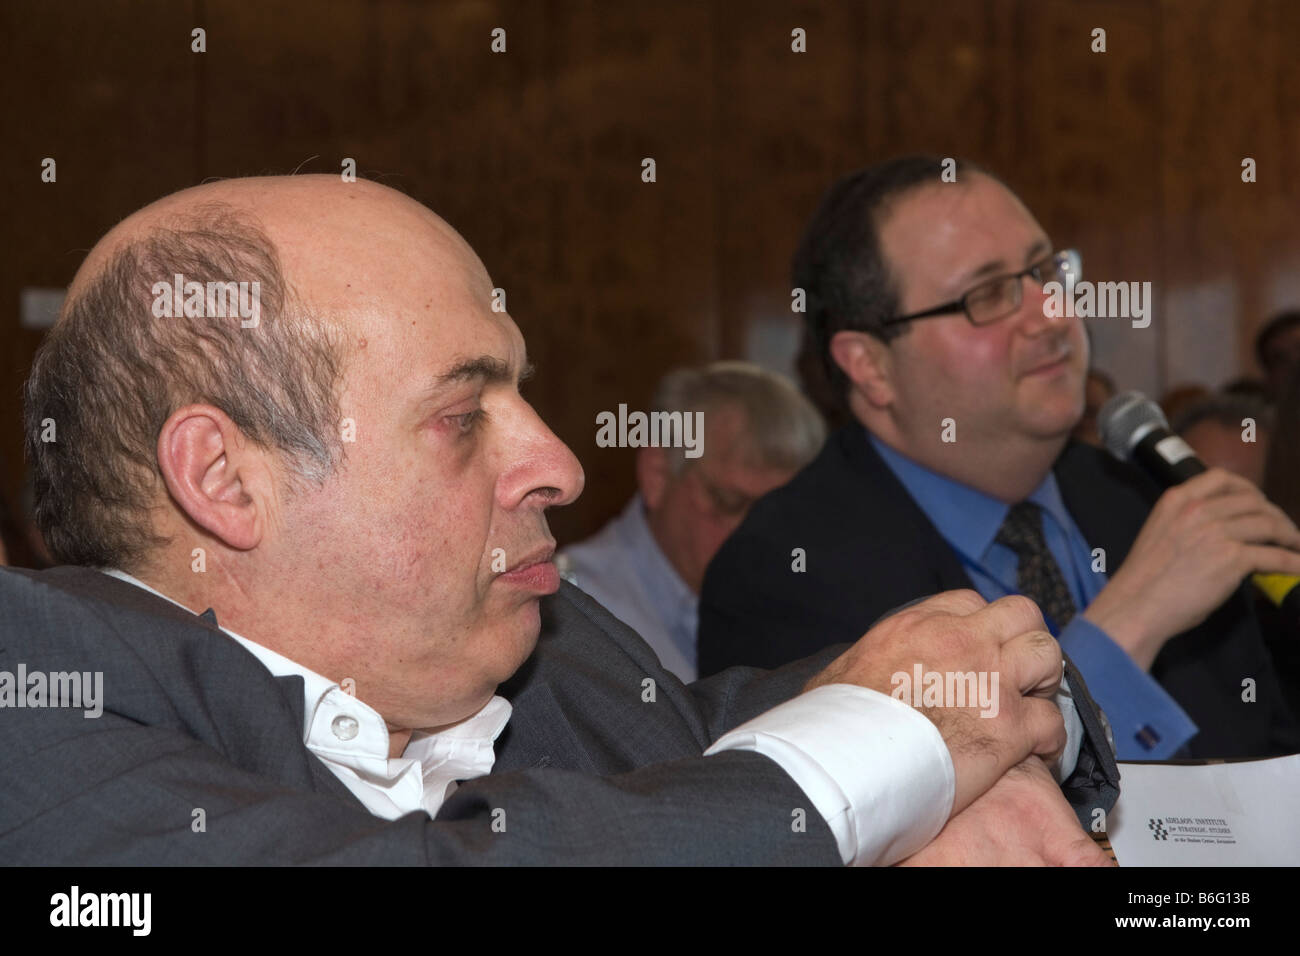 Nathan Sharansky,Chairman of the Adelson Institute for Stratgic Studies, Listens to Dr. Fred Kagan from AEI during Stock Photo